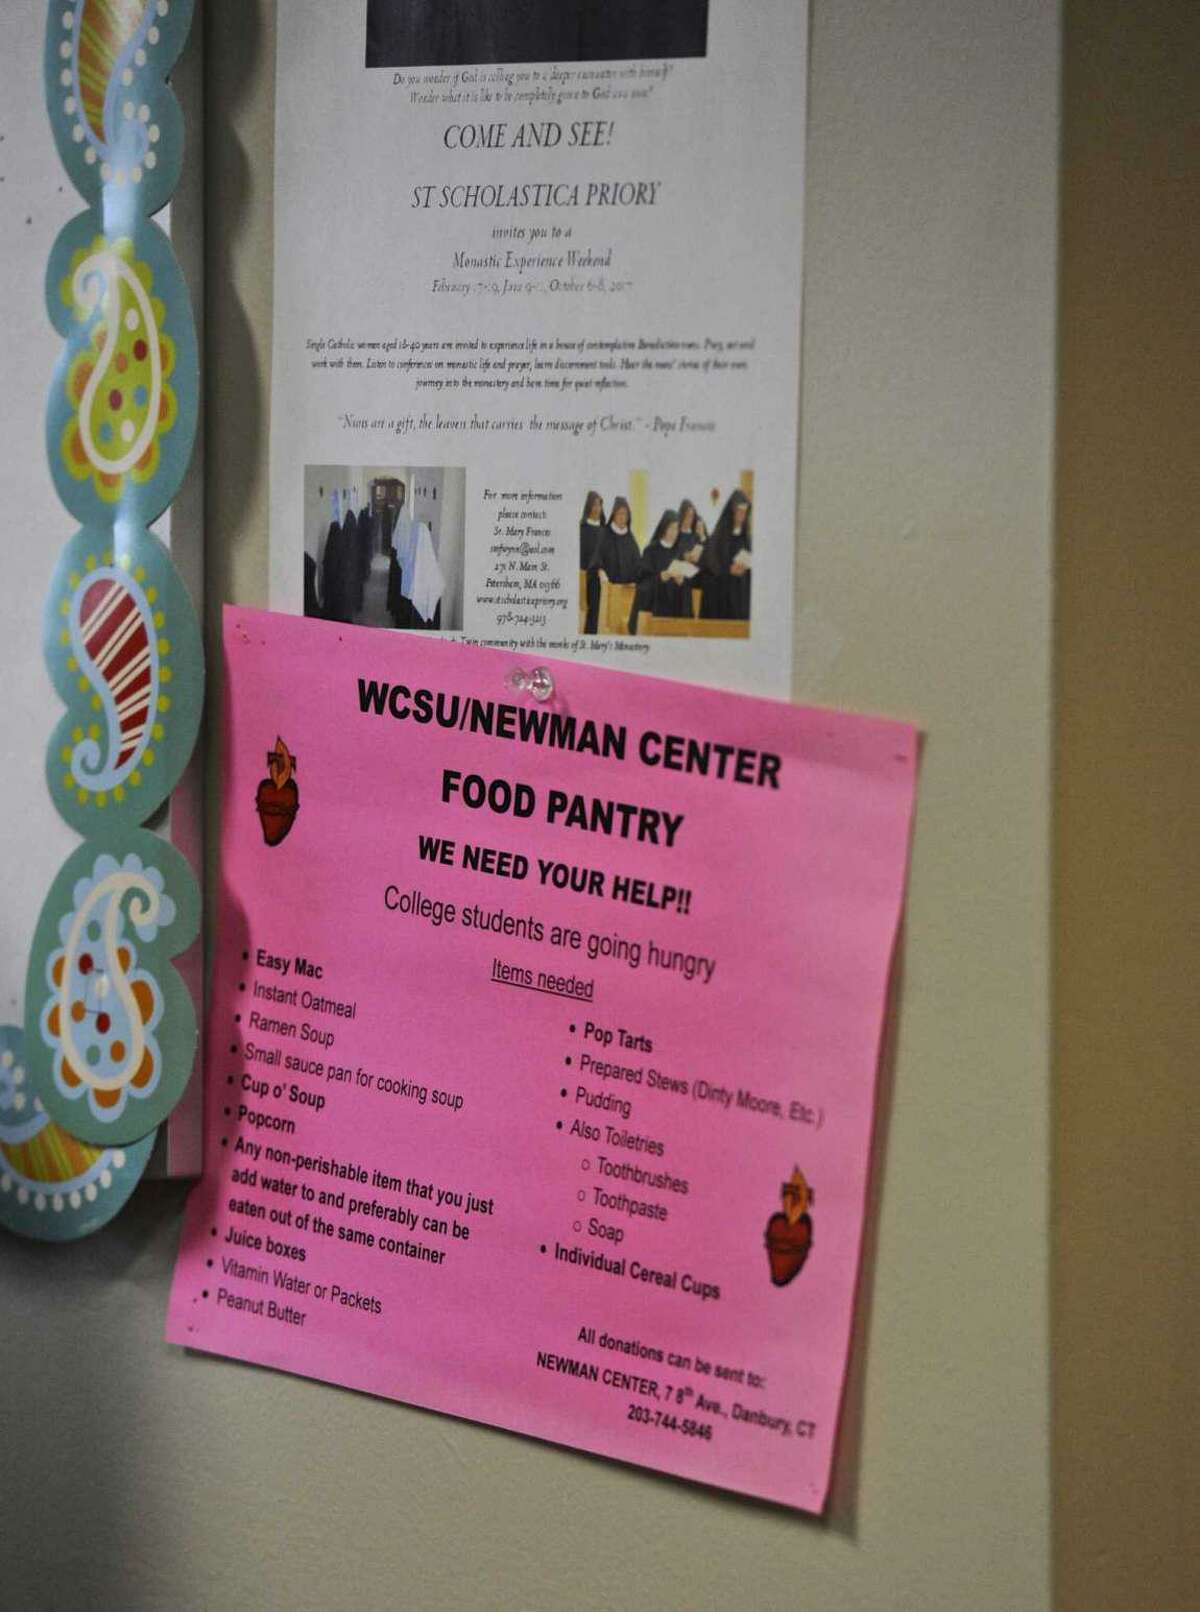 File photo. A sign for the Newman Center Food Pantry at Western Connecticut State University, asking for donations in Danbury, Conn.